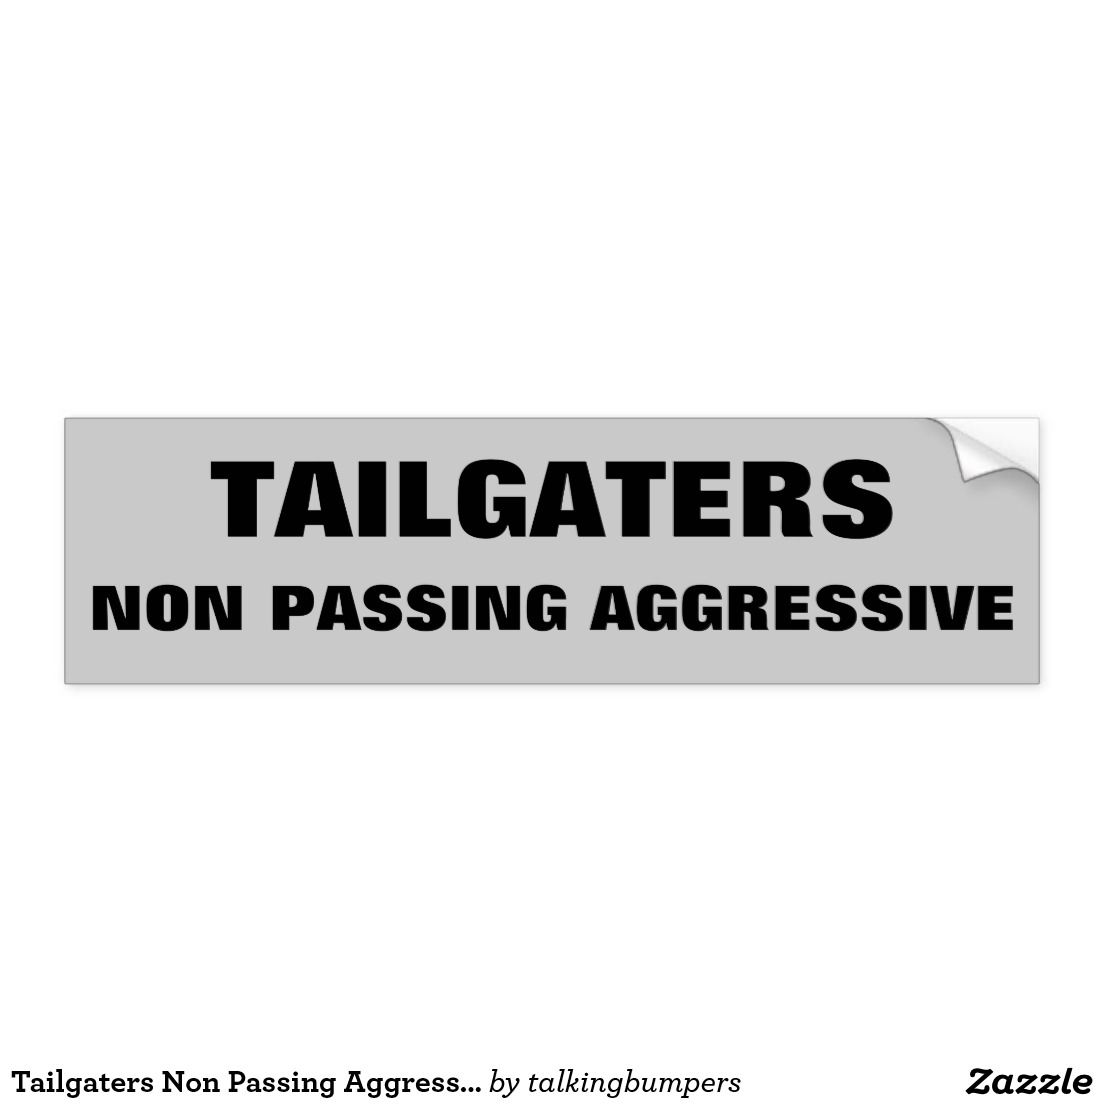 Tailgaters Non Passing Aggressive Bumper Sticker. They love to get aggressive but they are afraid to pass. Passive aggressive? No, just the opposite.